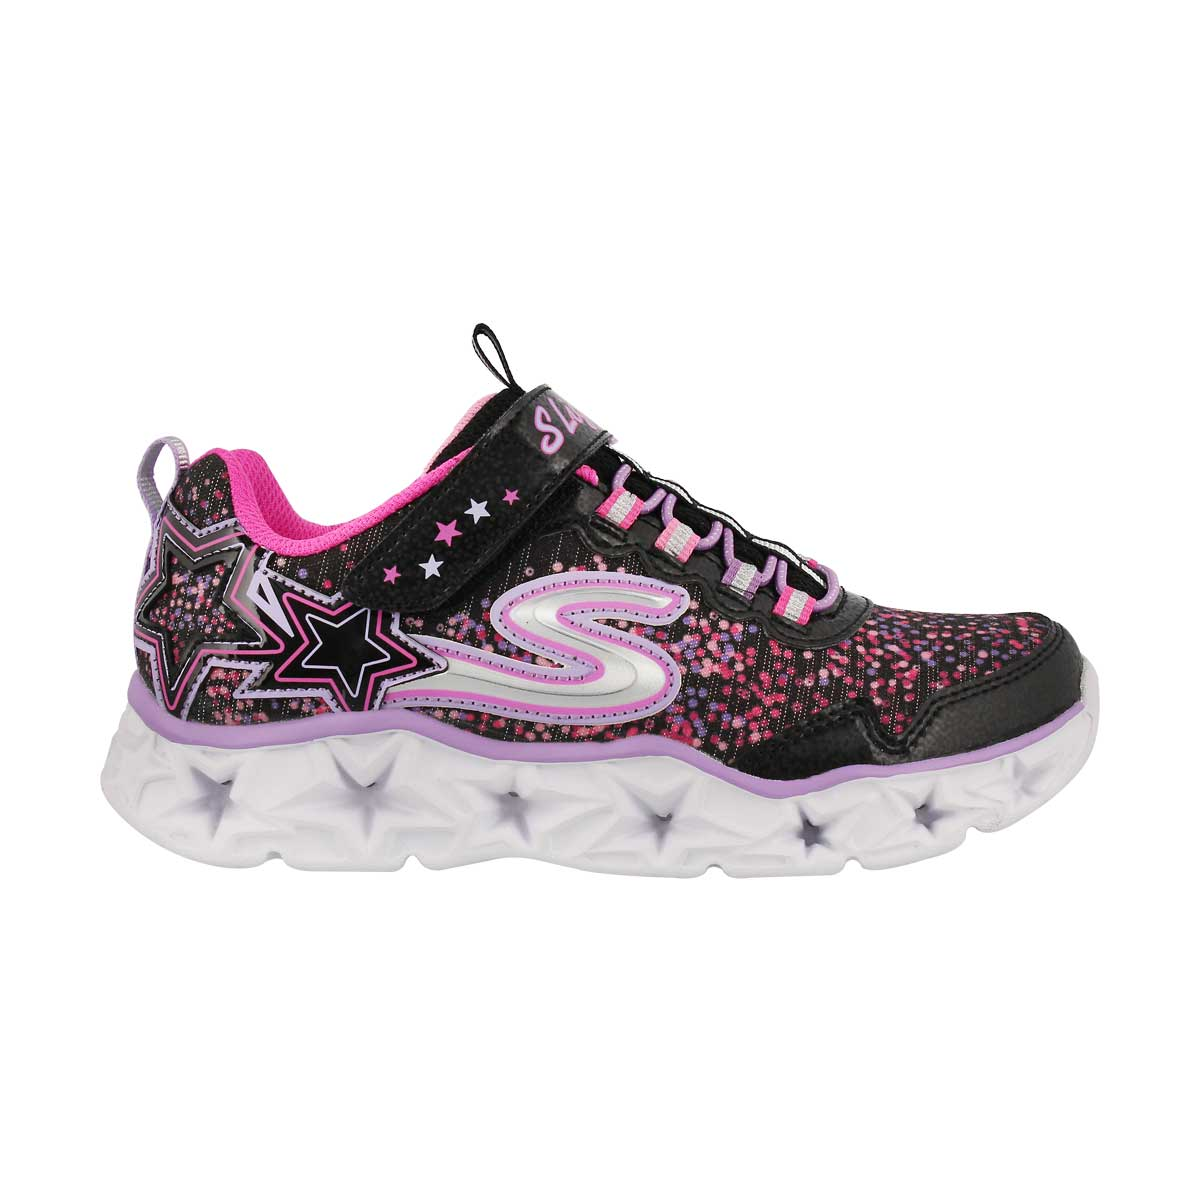 Grls Galaxy Lights blk/mlt light up snkr